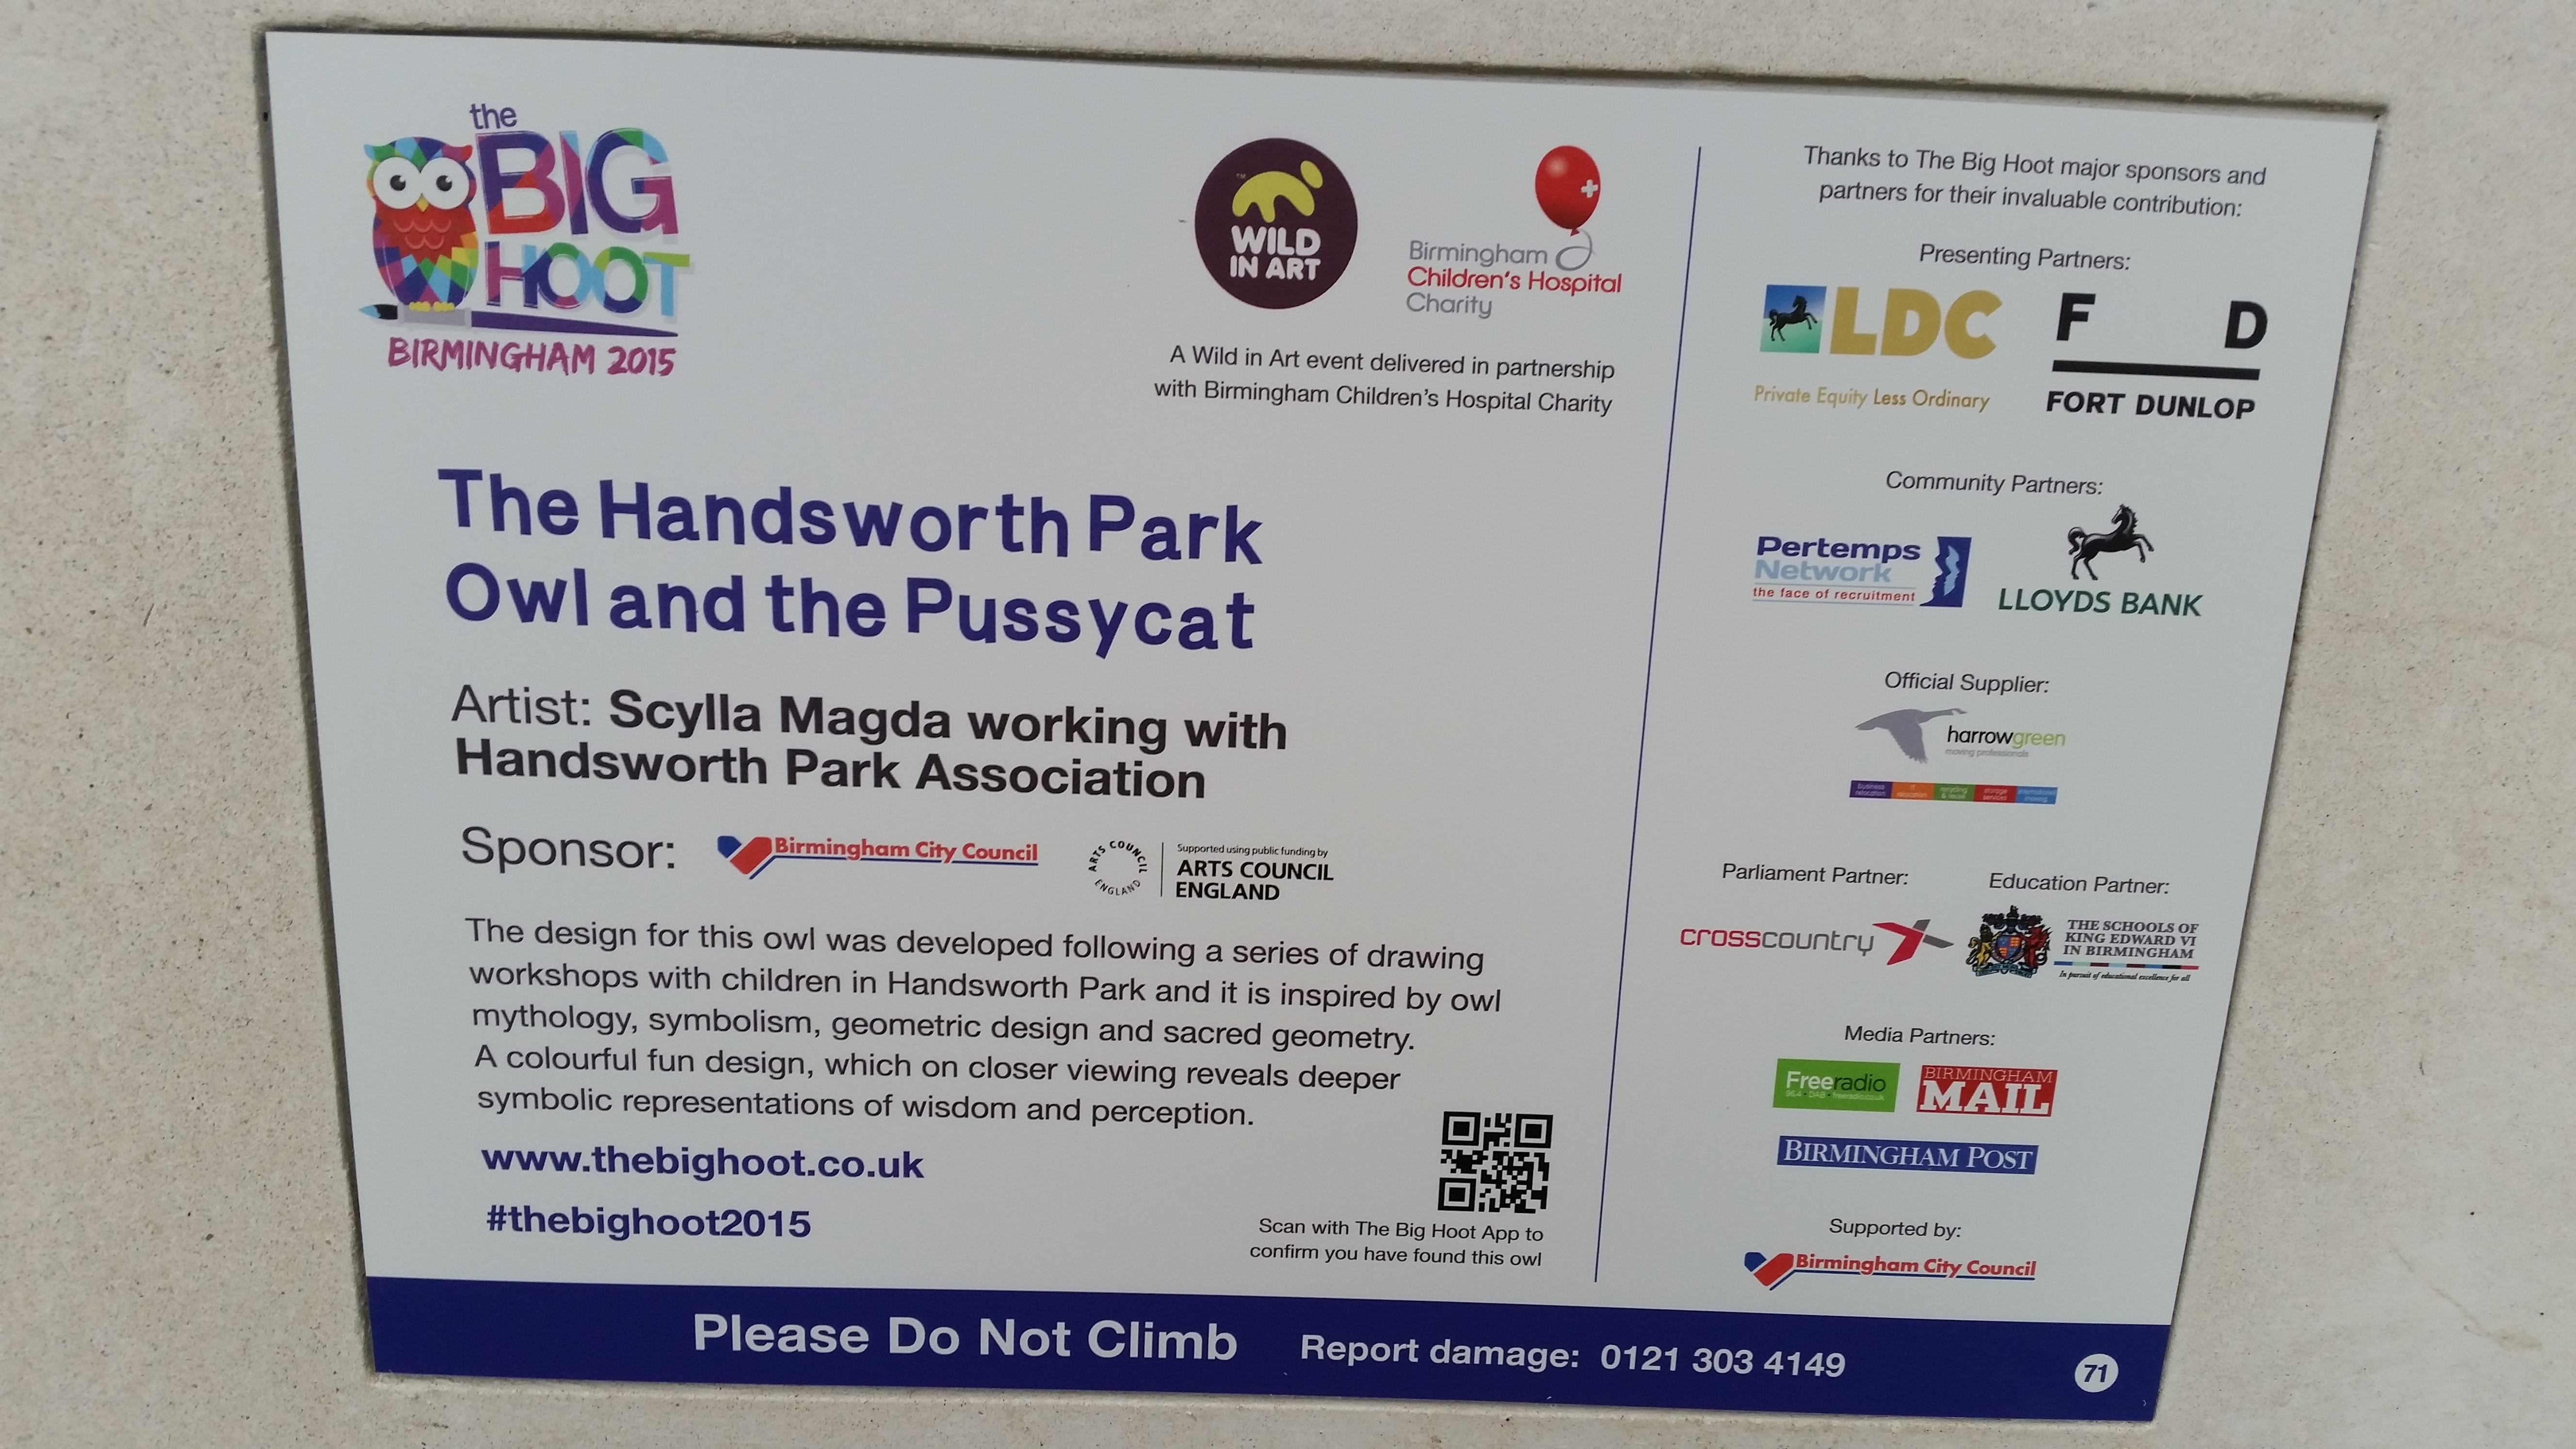 Sign from the Handsworth Park Owl